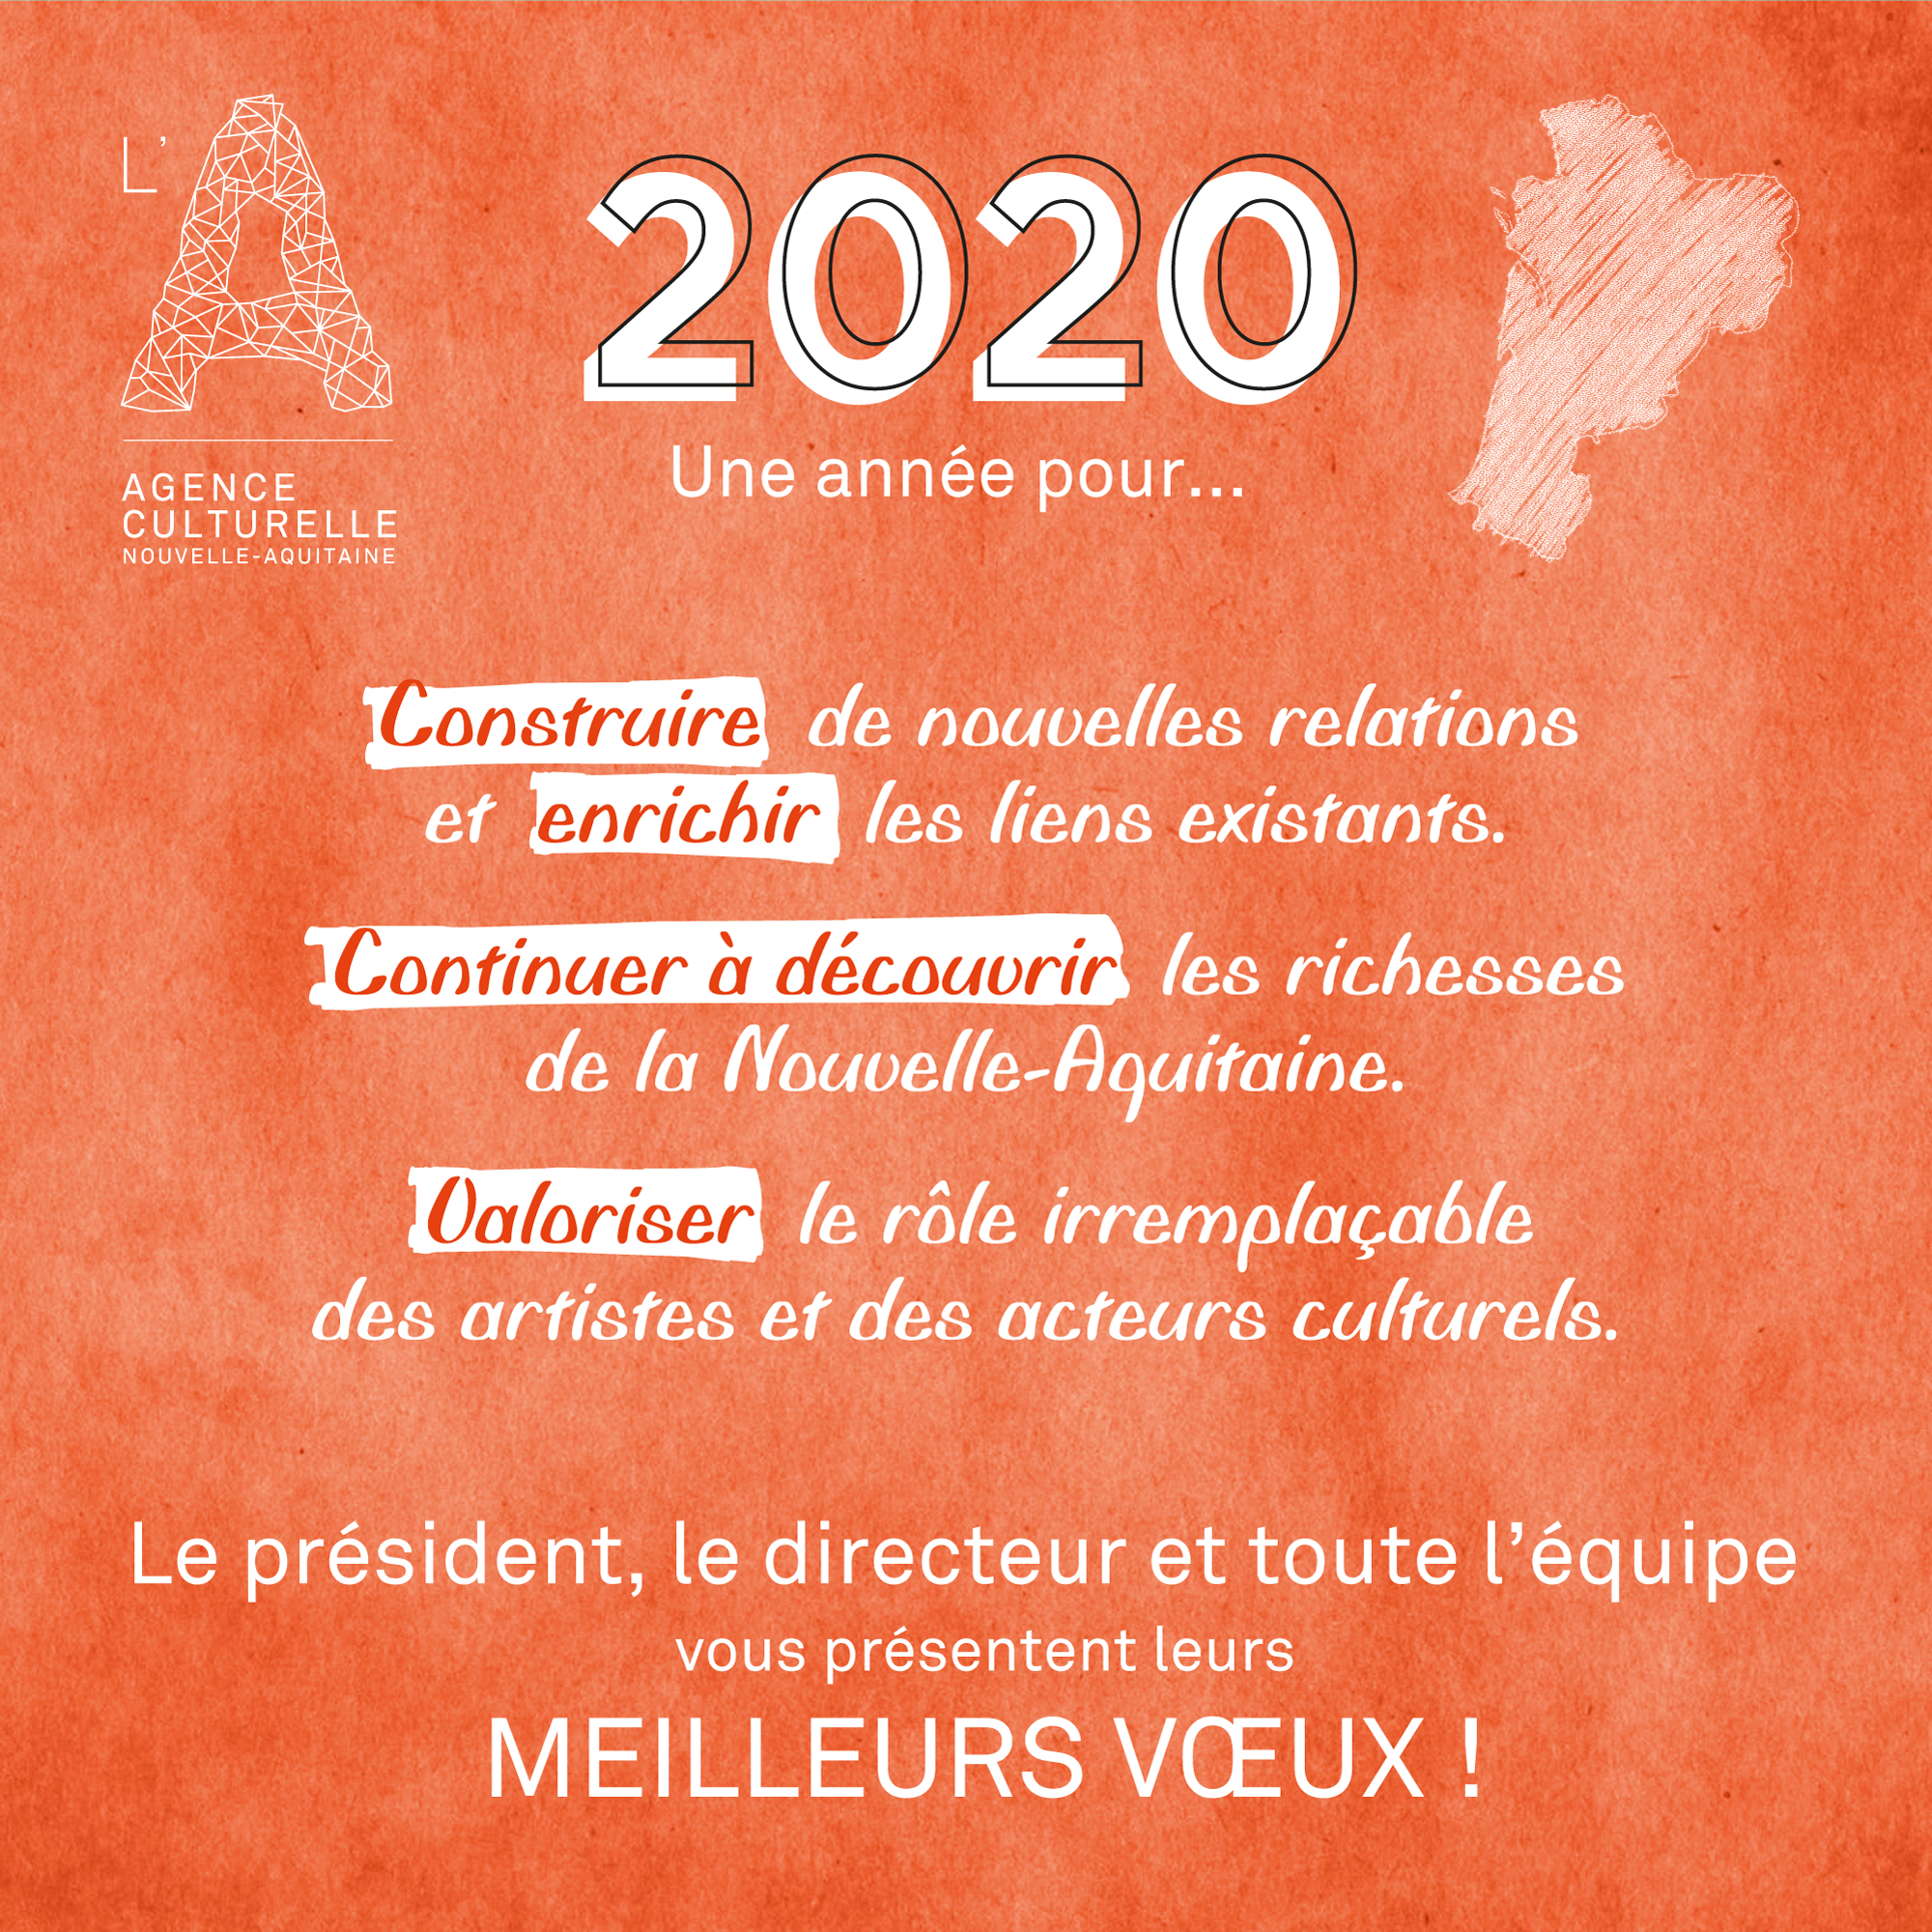 voeux2020.png